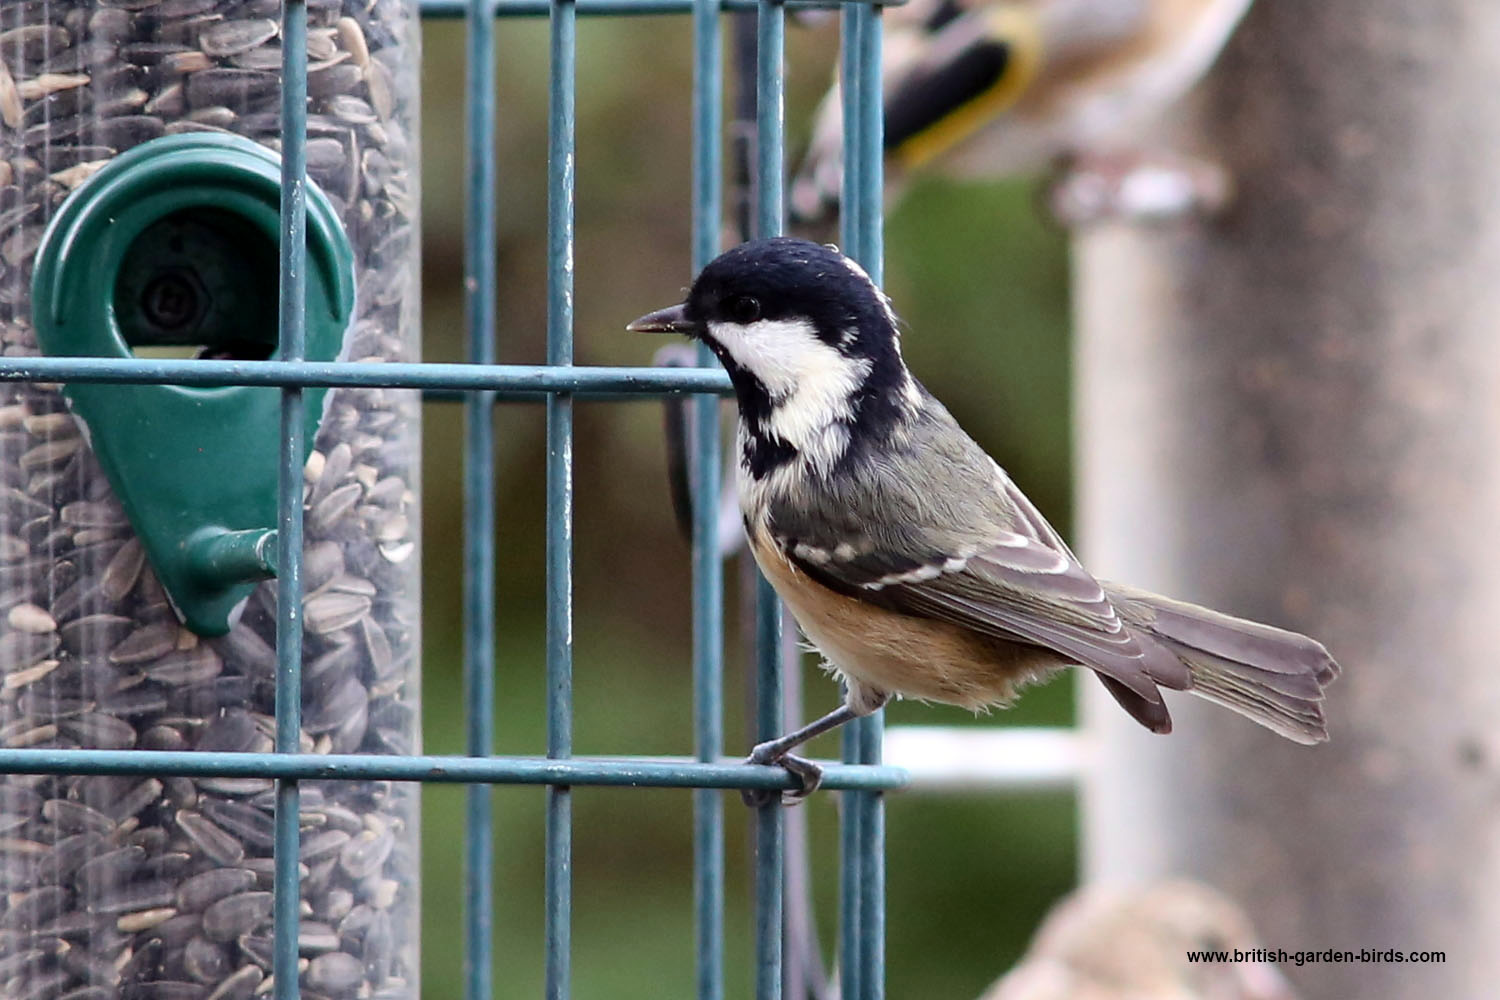 Sunflower seed feeder